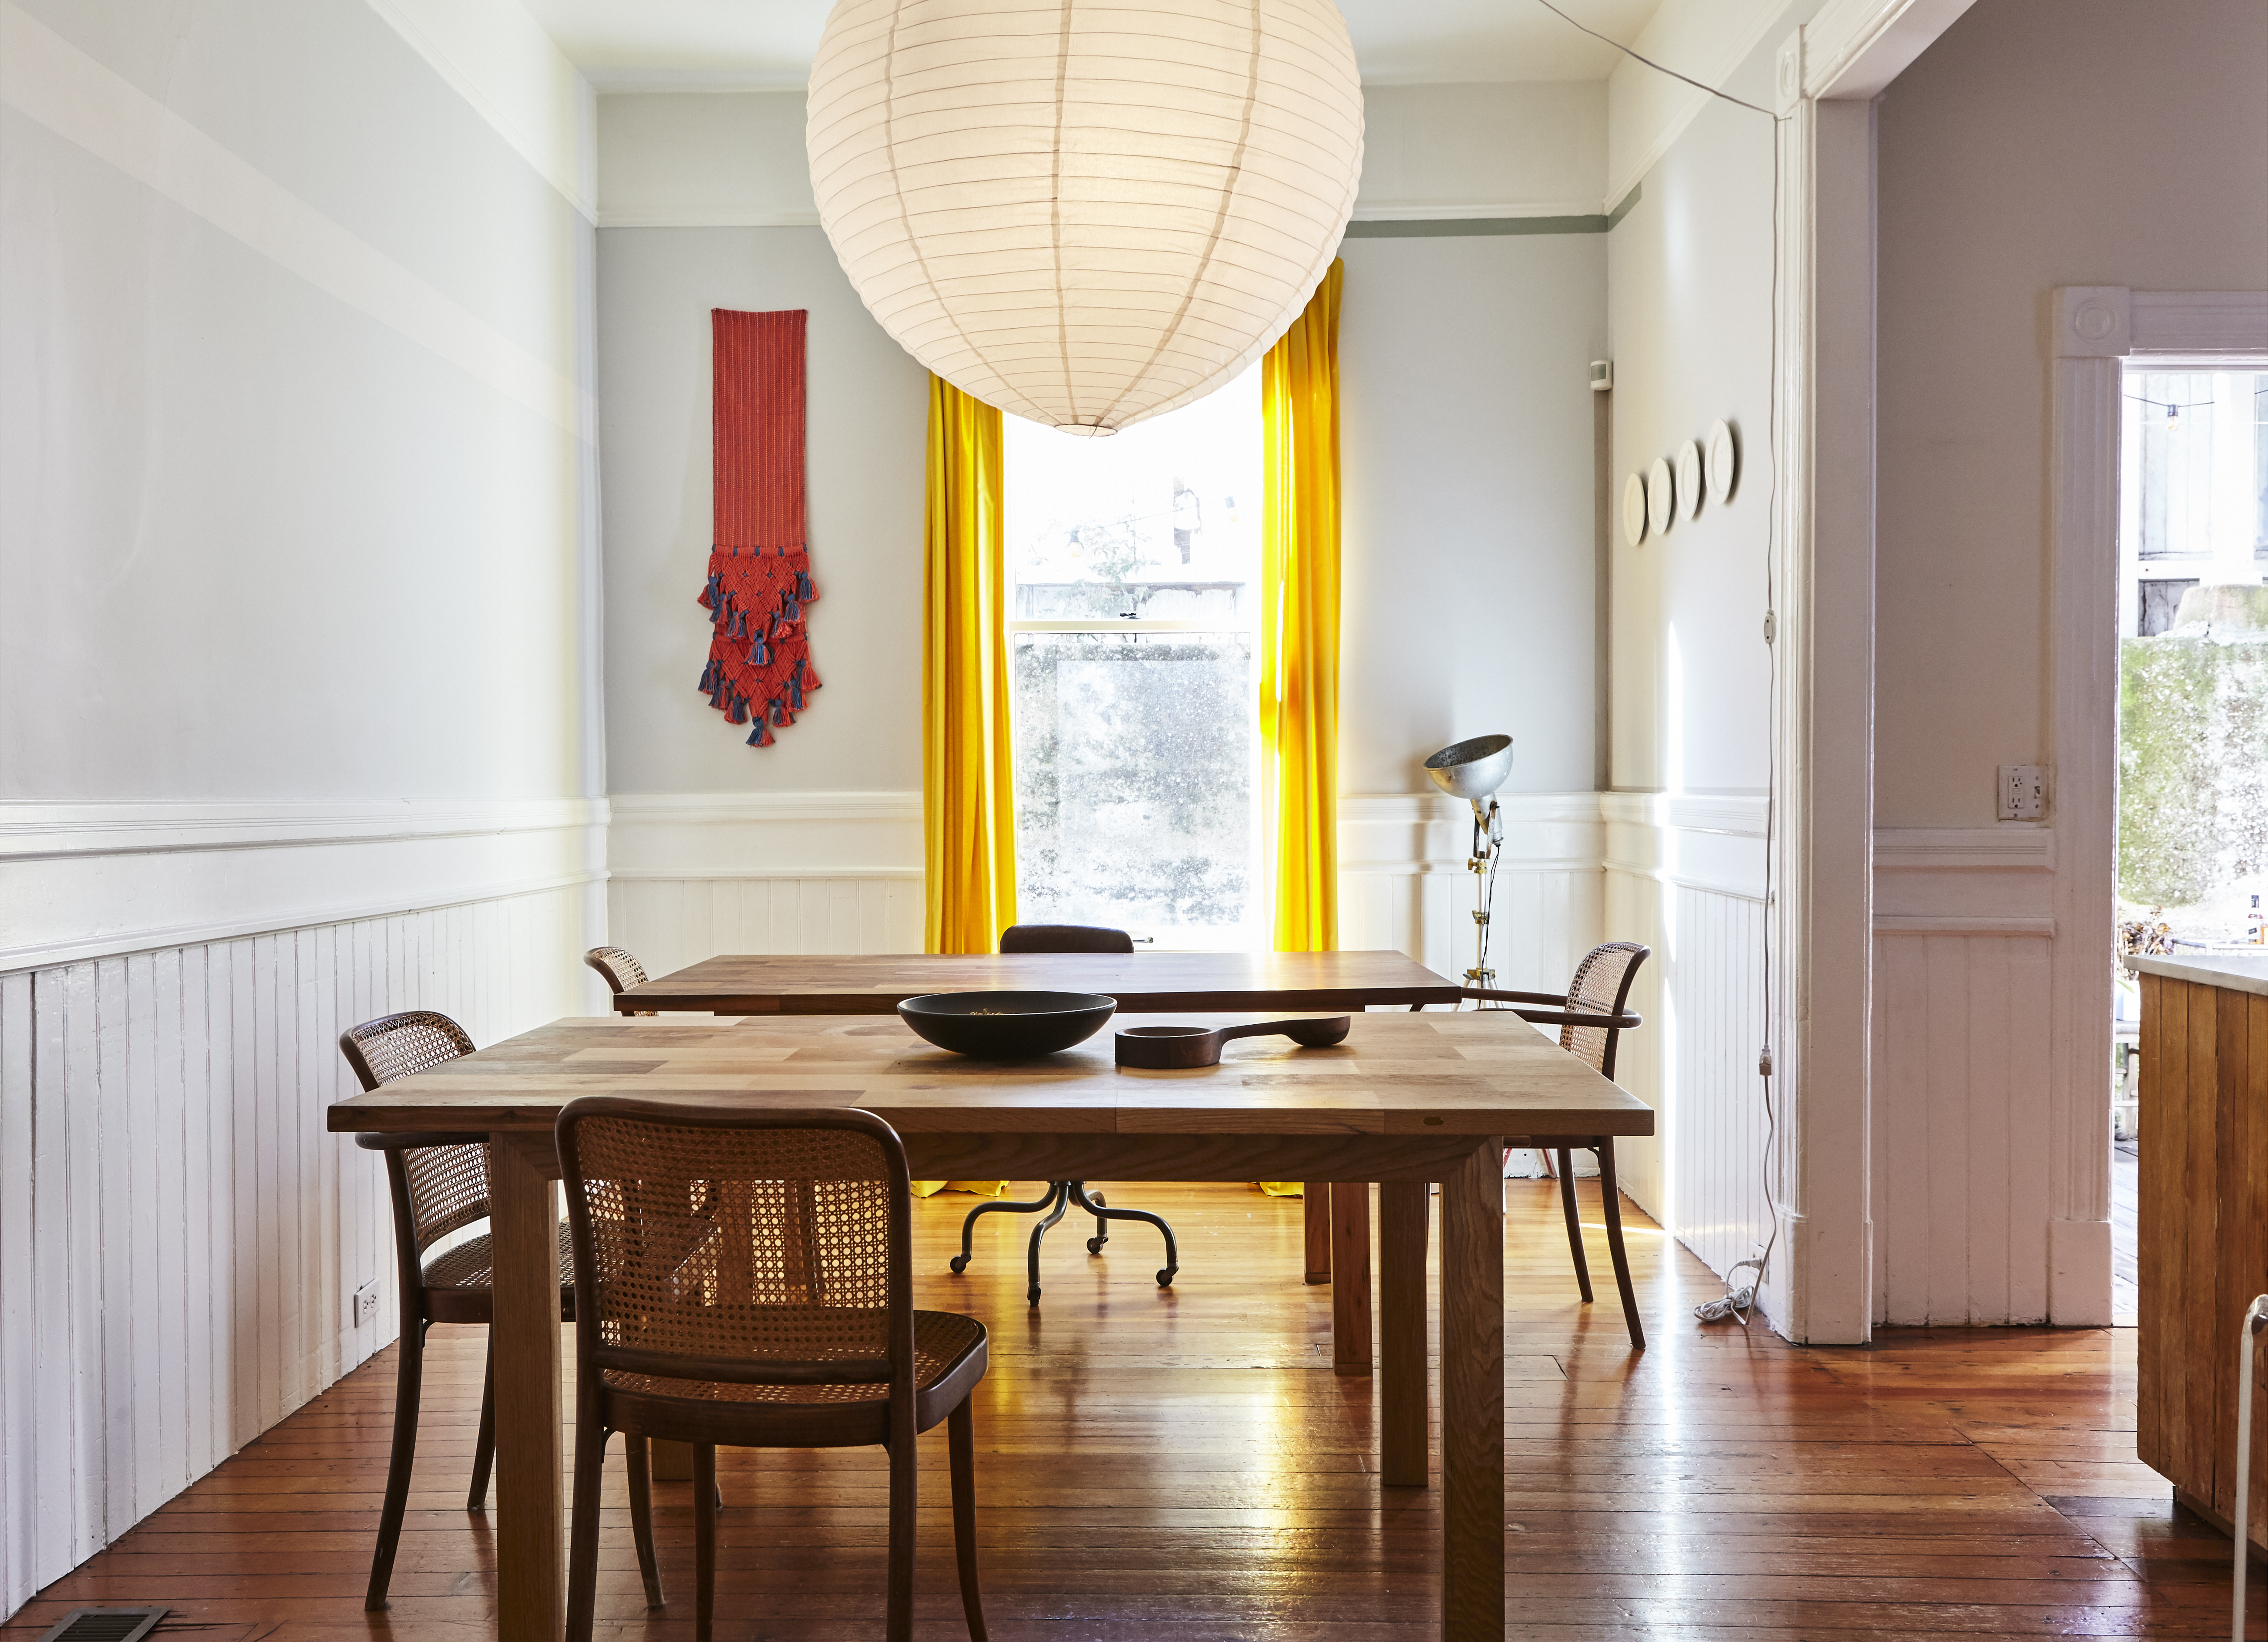 Dining Room With Two Large Wooden Tables, Yellow Curtains And Red Art Wall  Hanging.